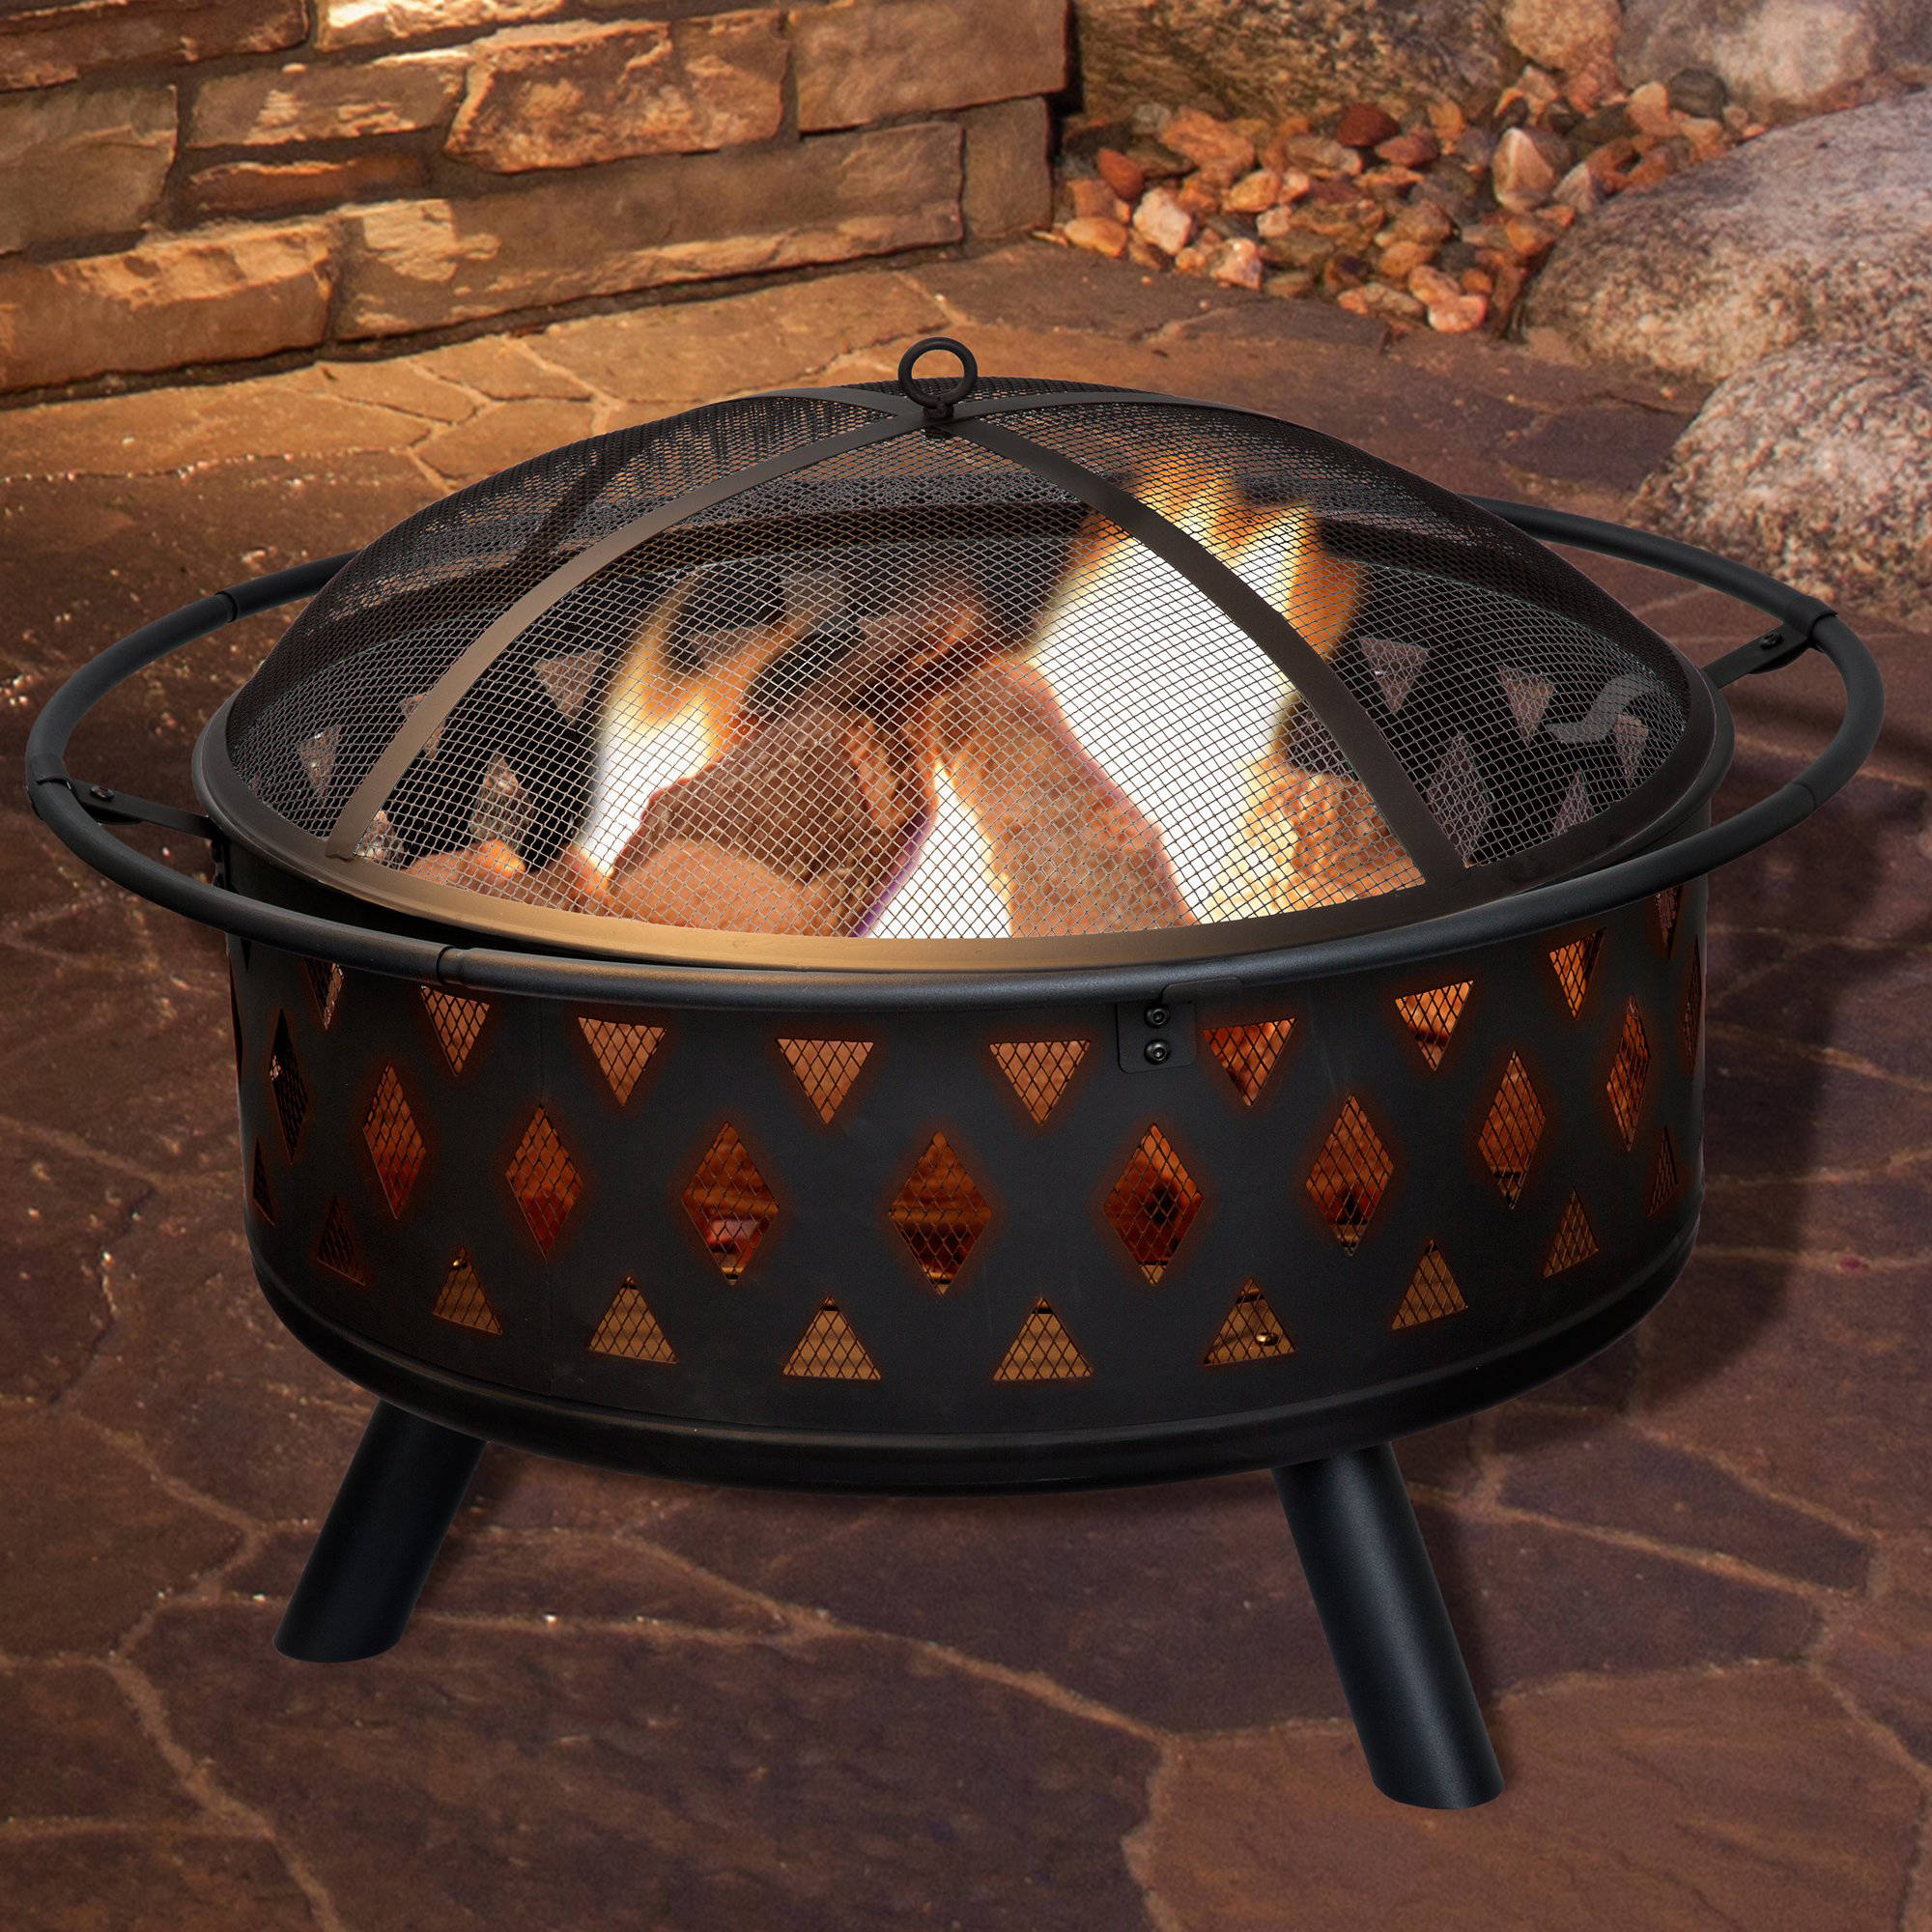 Firepit Set, Wood Burning Pit Includes Screen, Cover and Log Poker Great for Outdoor and... by Trademark Global LLC